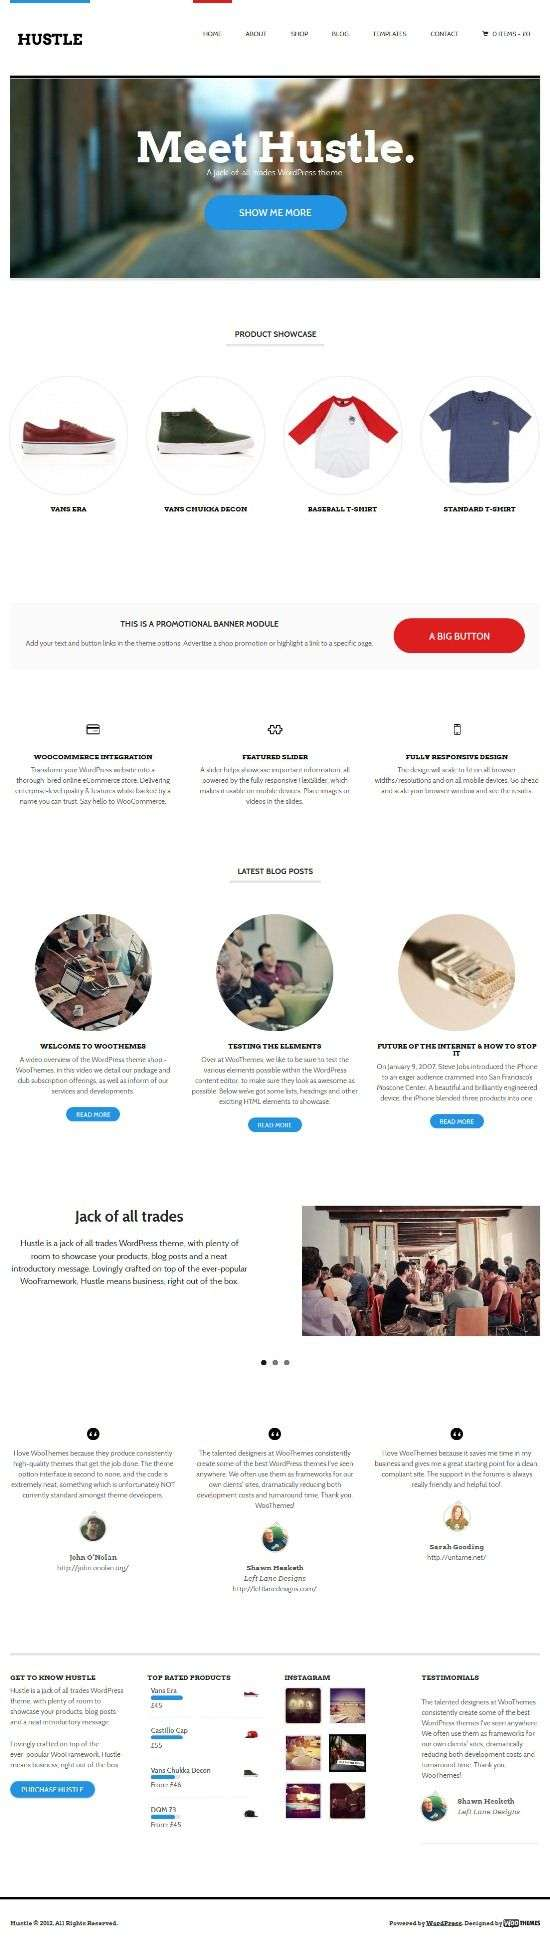 hustle woothemes avjthemescom 1 - Hustle WordPress Theme